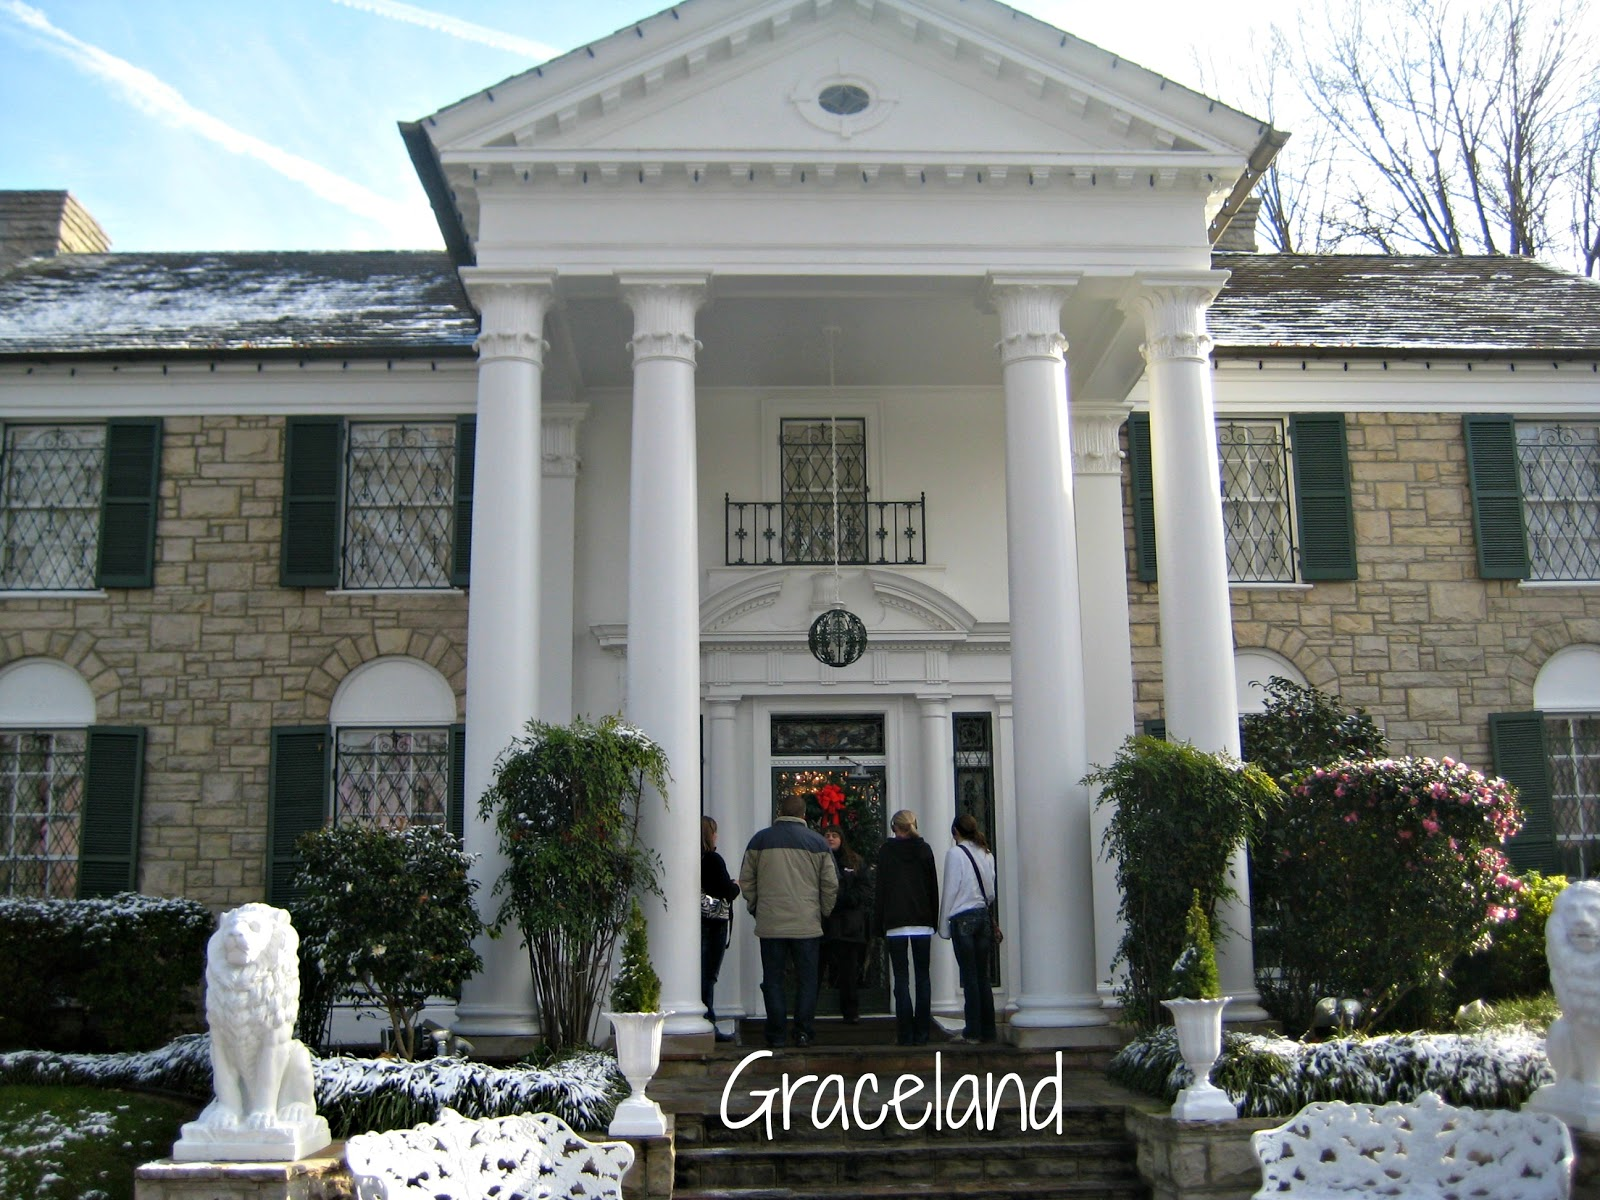 Memphis Tennessee Graceland Tours